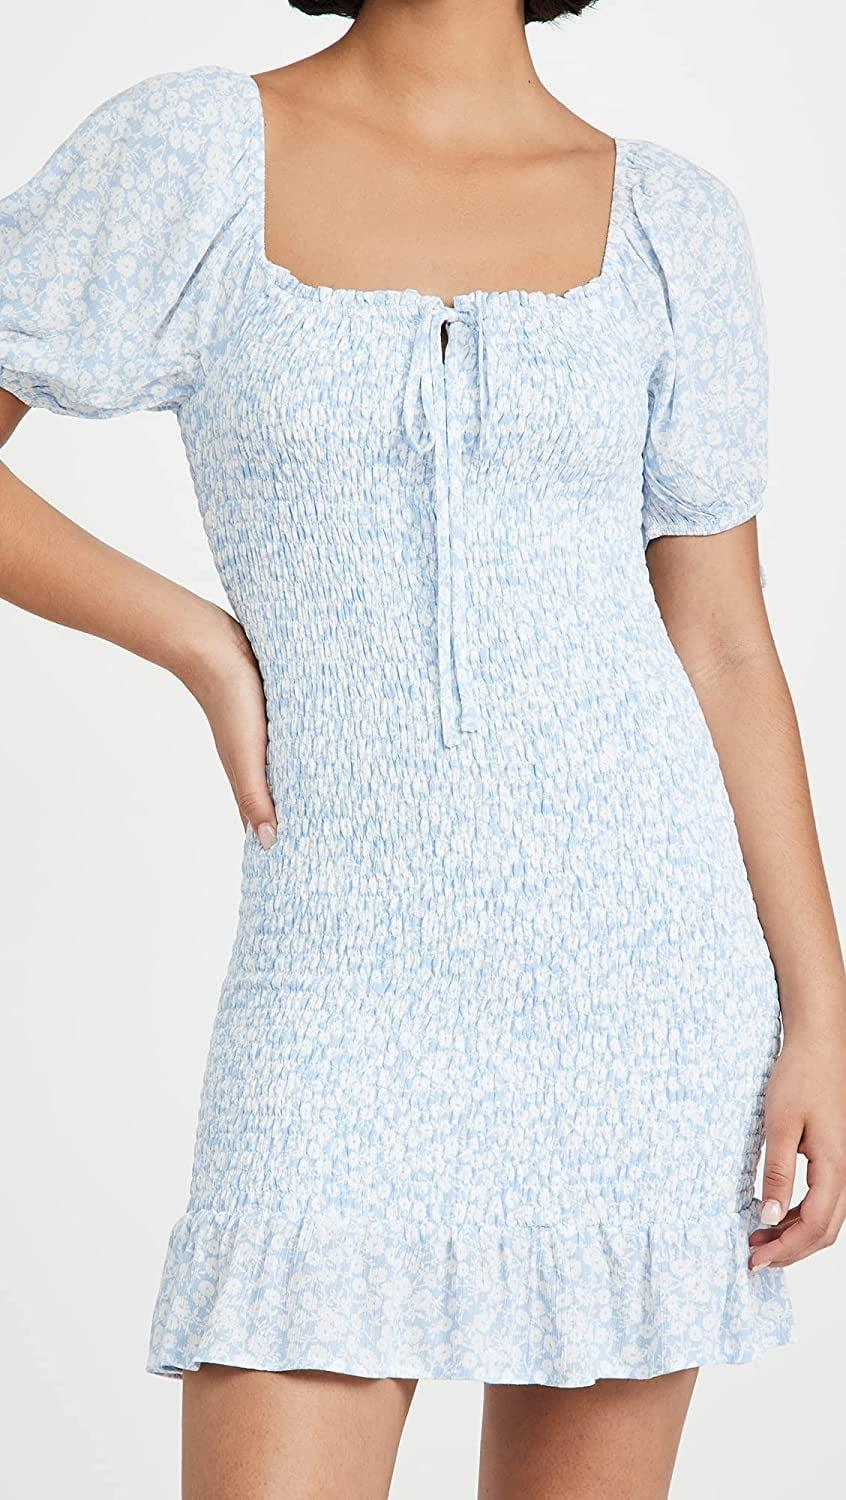 <p>This <span>Lost + Wander Wander My Way Minidress</span> ($76) is a great fit for picnics or cute day parties. We like the charming floral print, sweet sleeves and tie details.</p>